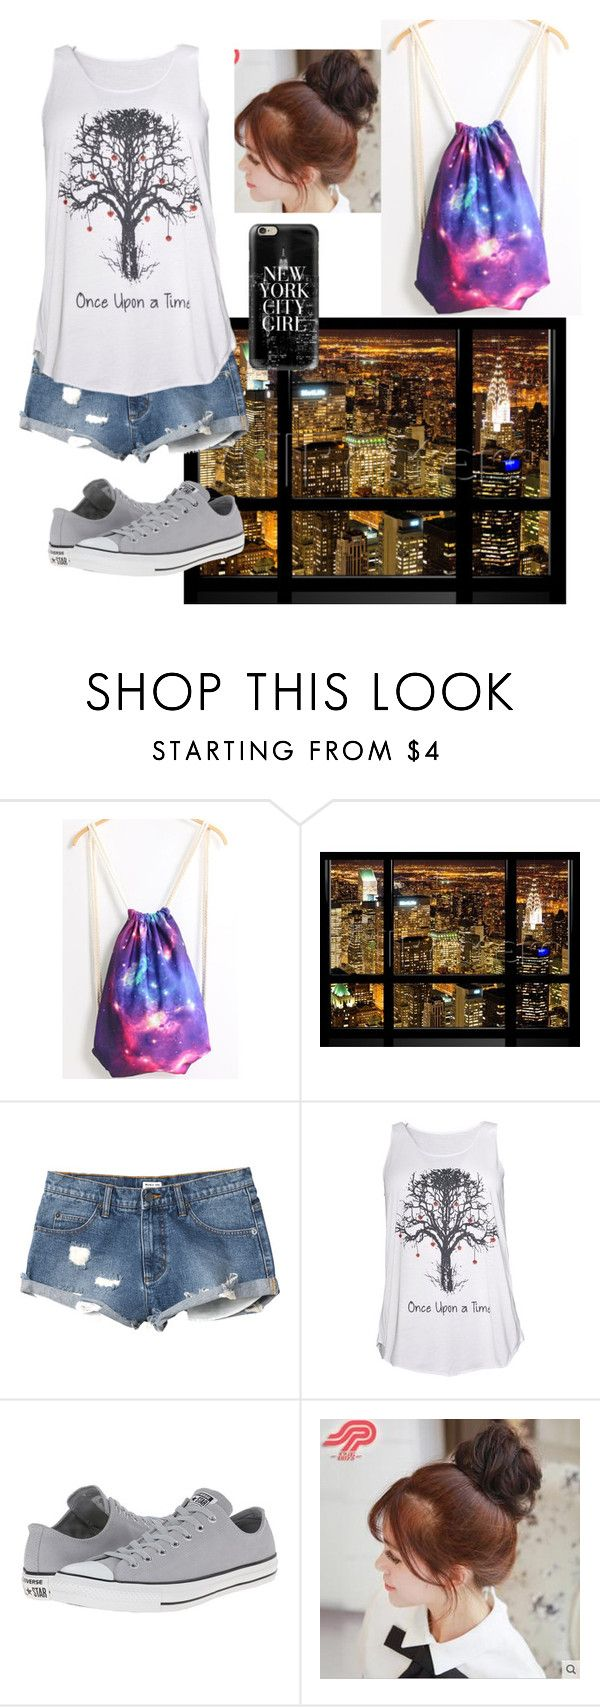 """New York"" by amelia-lopez ❤ liked on Polyvore featuring RVCA, Once Upon a Time, Converse, Pin Show and Casetify"